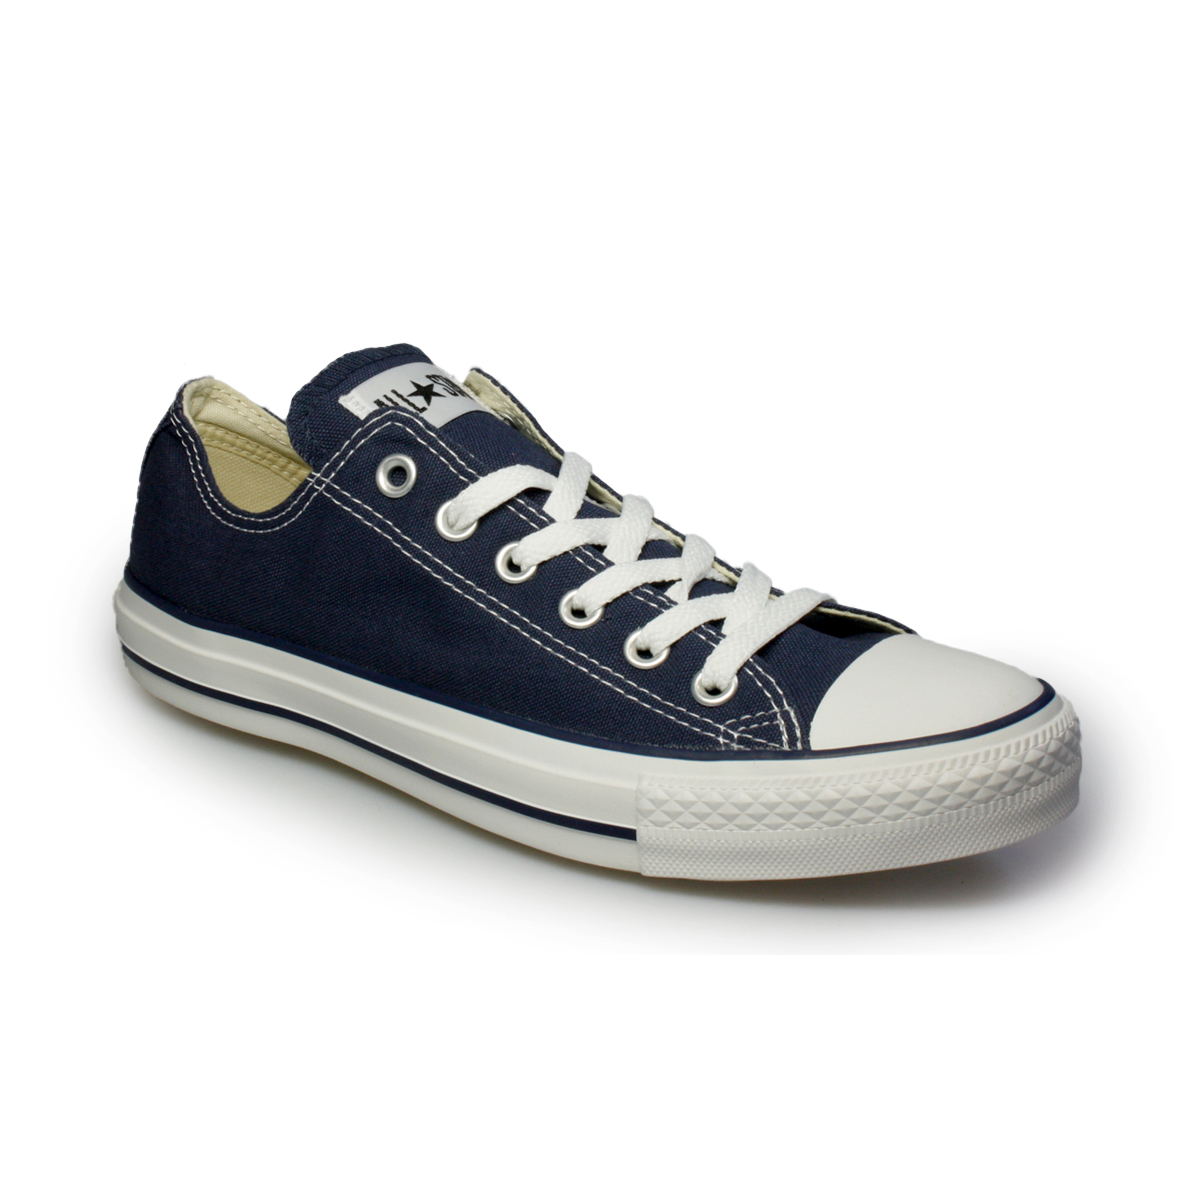 converse men Shop for brands you love on sale discounted shoes, clothing, accessories and more at 6pmcom score on the style, score on the price.